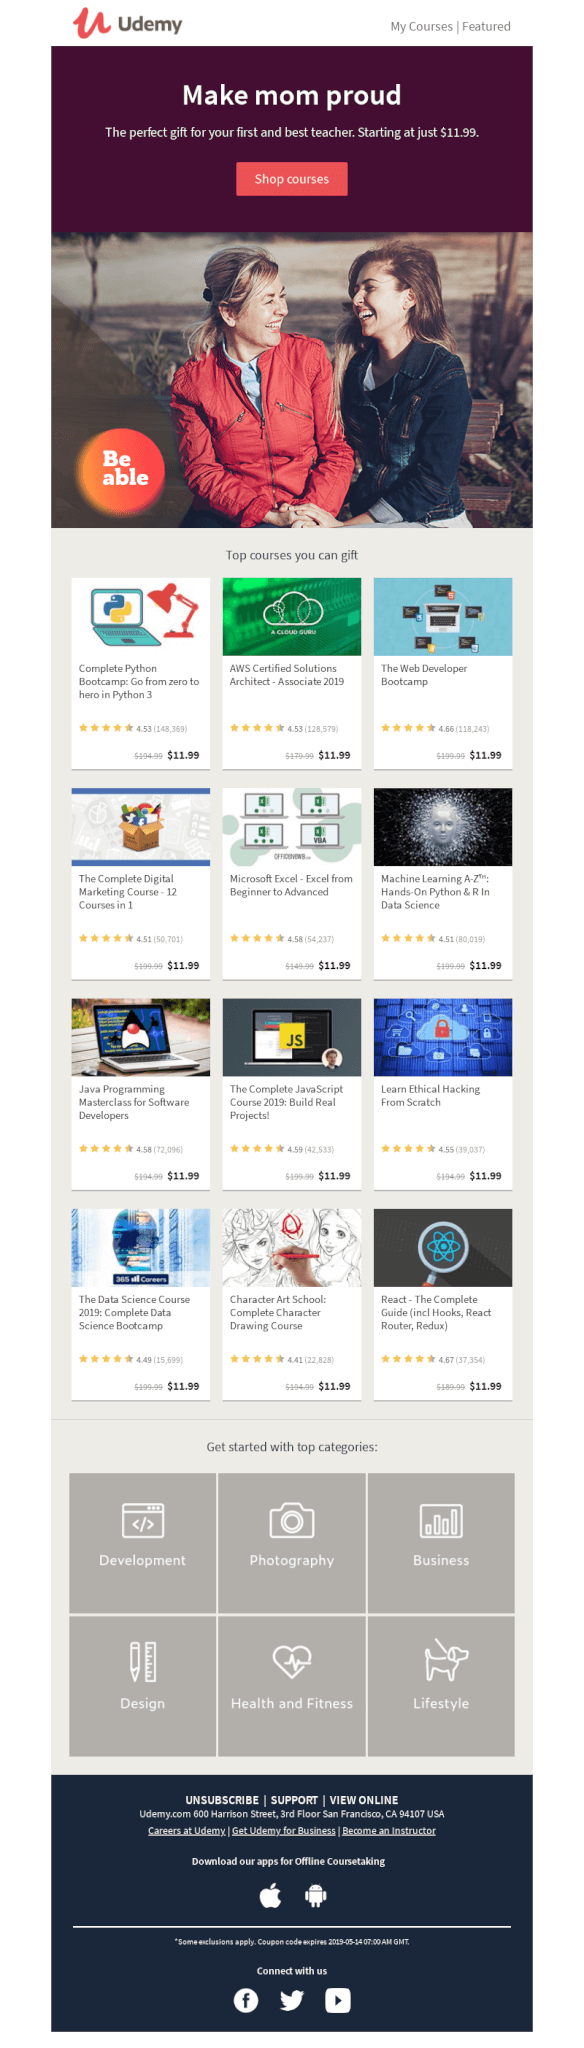 Udemy_email